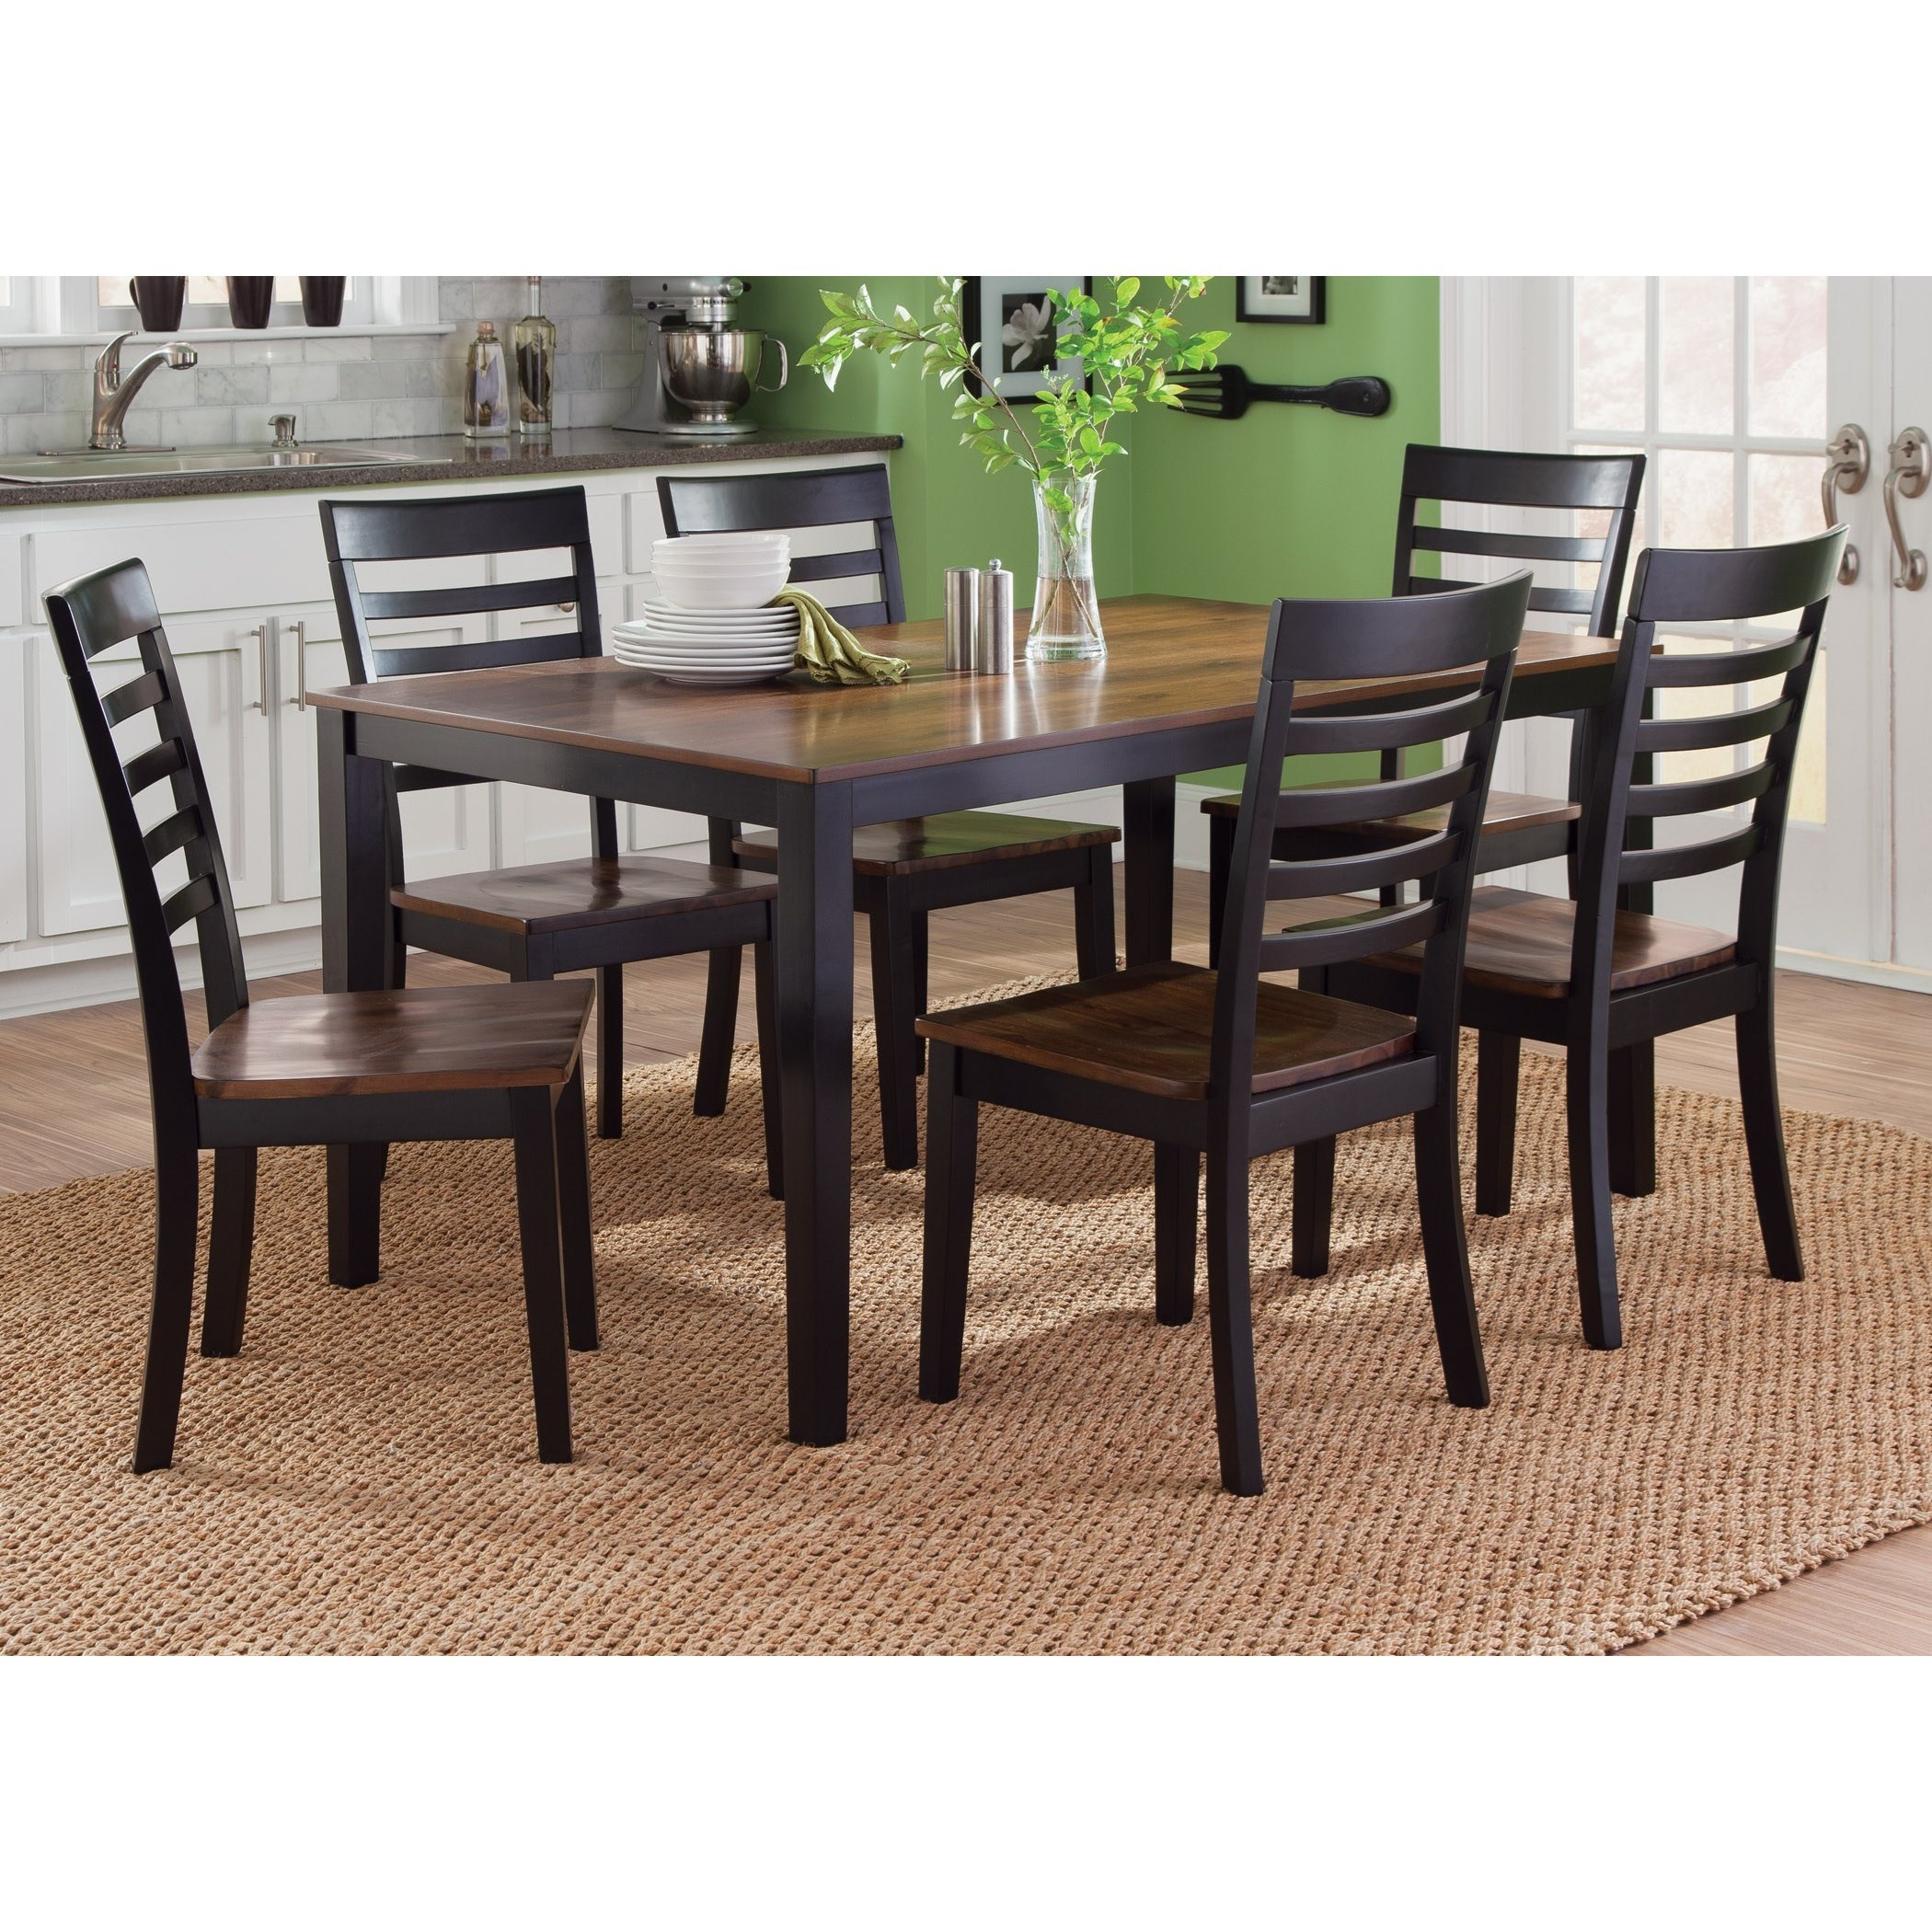 Liberty Furniture Cafe Dining 7 Piece Rectangular Table Set